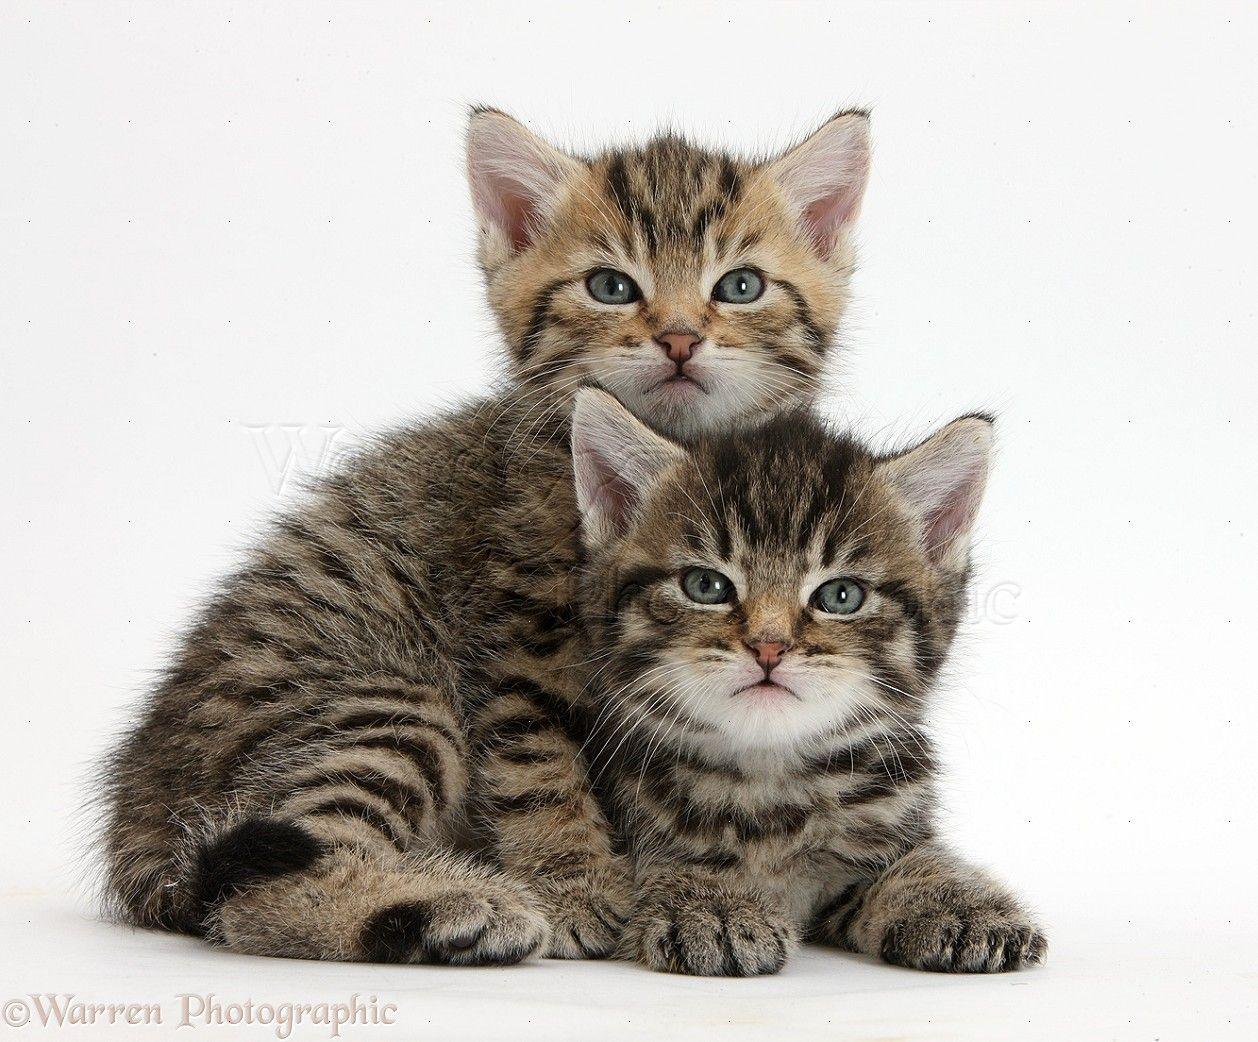 Kittens Yahoo Image Search Results Kittens Pinterest